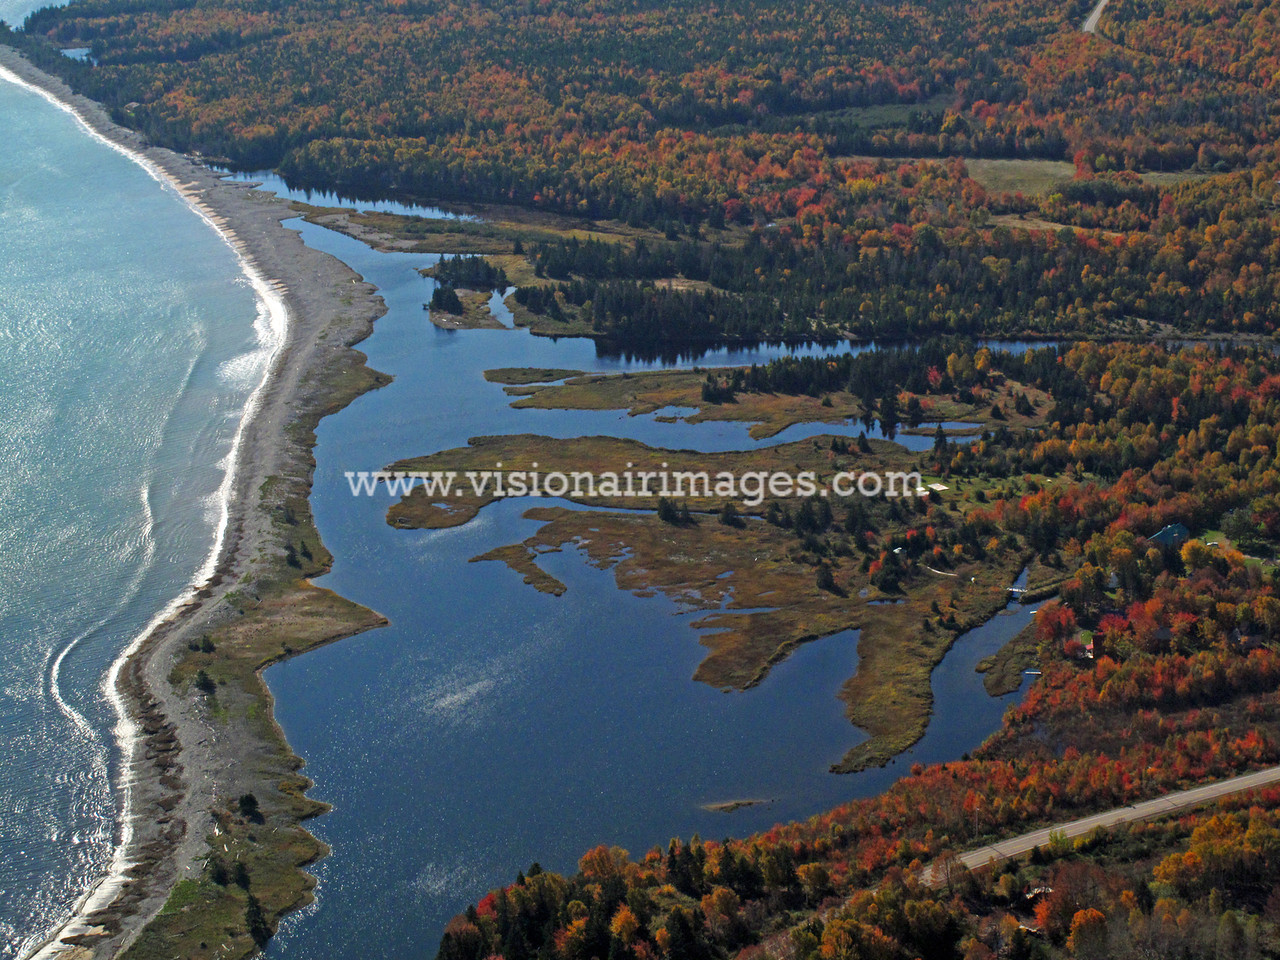 Indian Brook, Cabot Trail, 30, Sydney, Nova Scotia, Canada